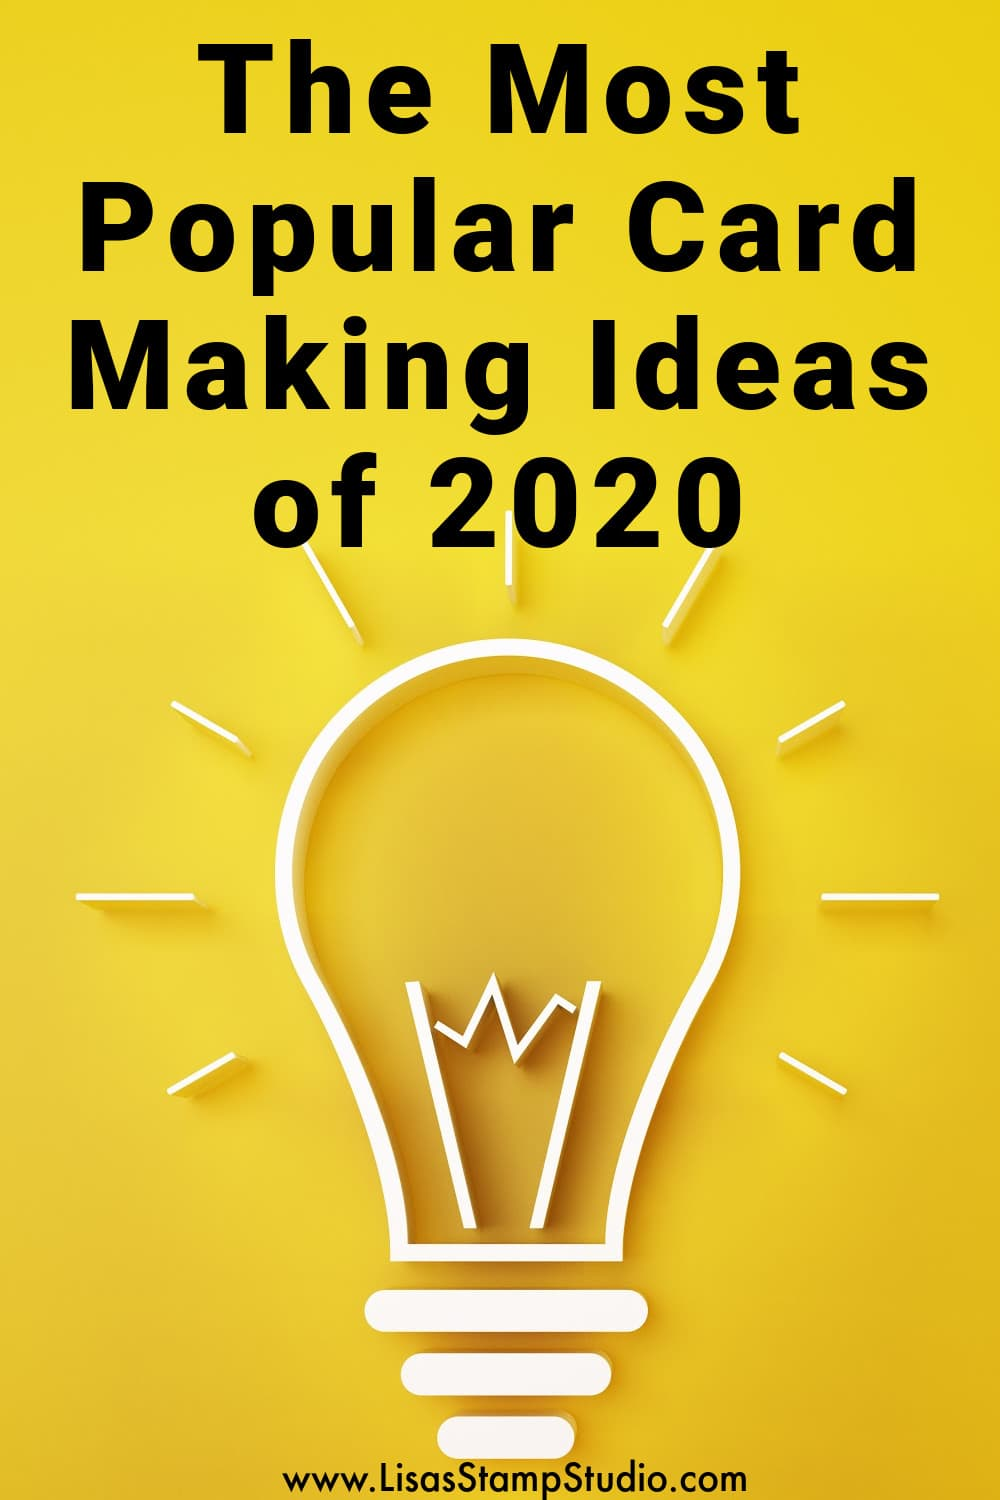 Popular card making ideas of 2020